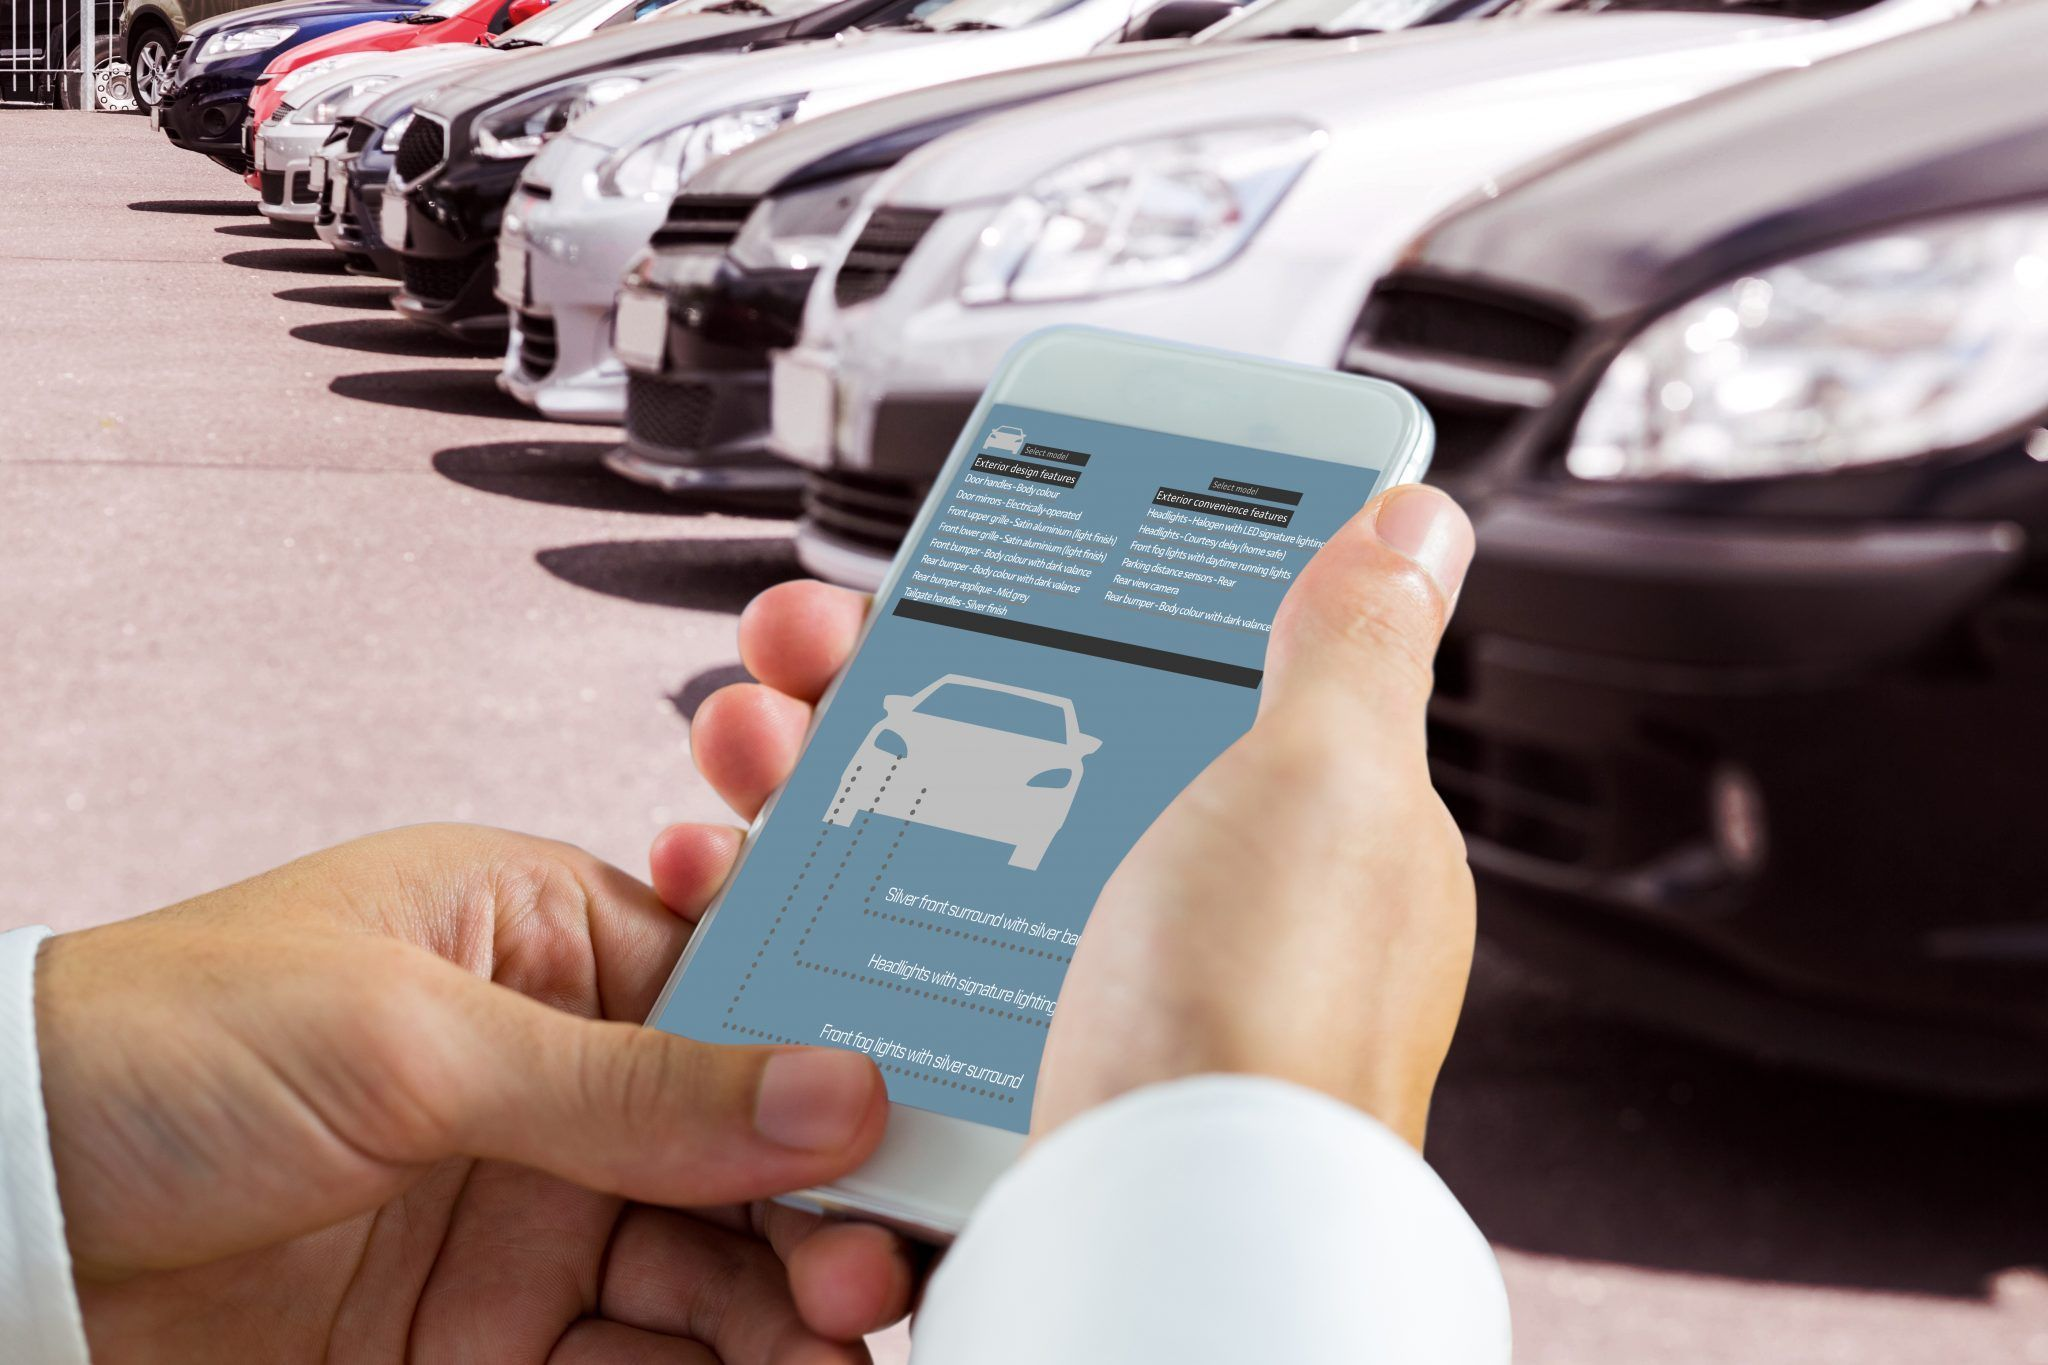 How Digital Technology Can Improve Dealership Experiences